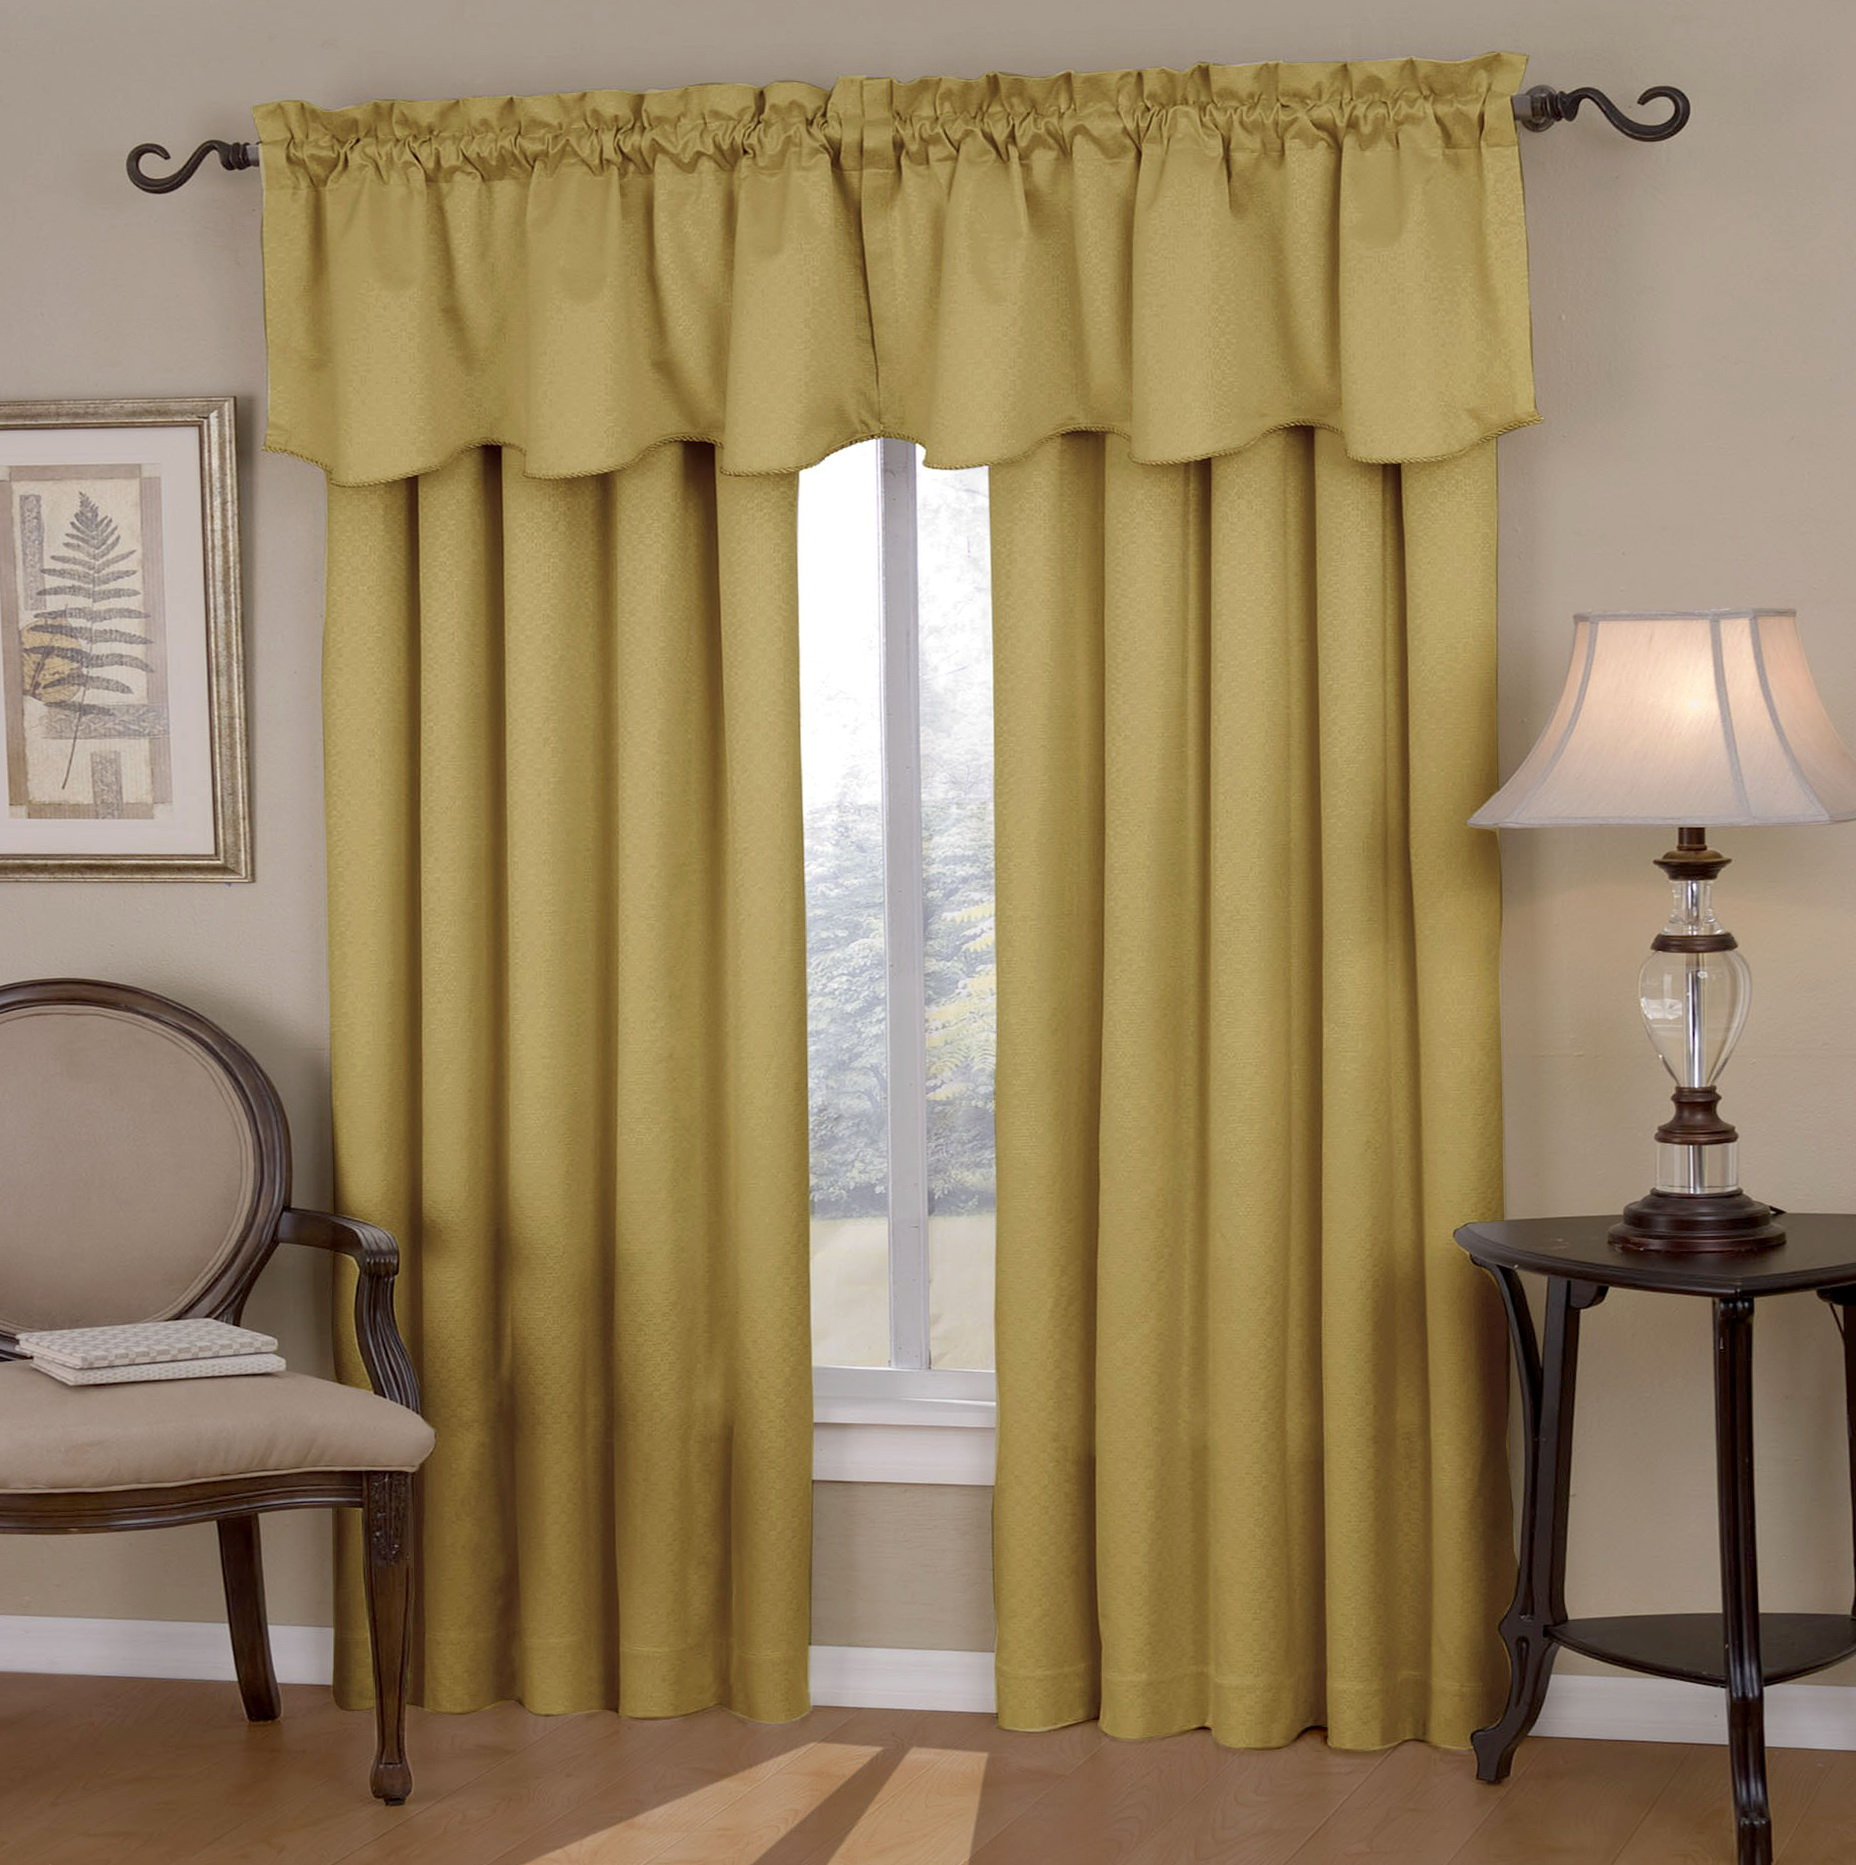 Curtains at jc penney